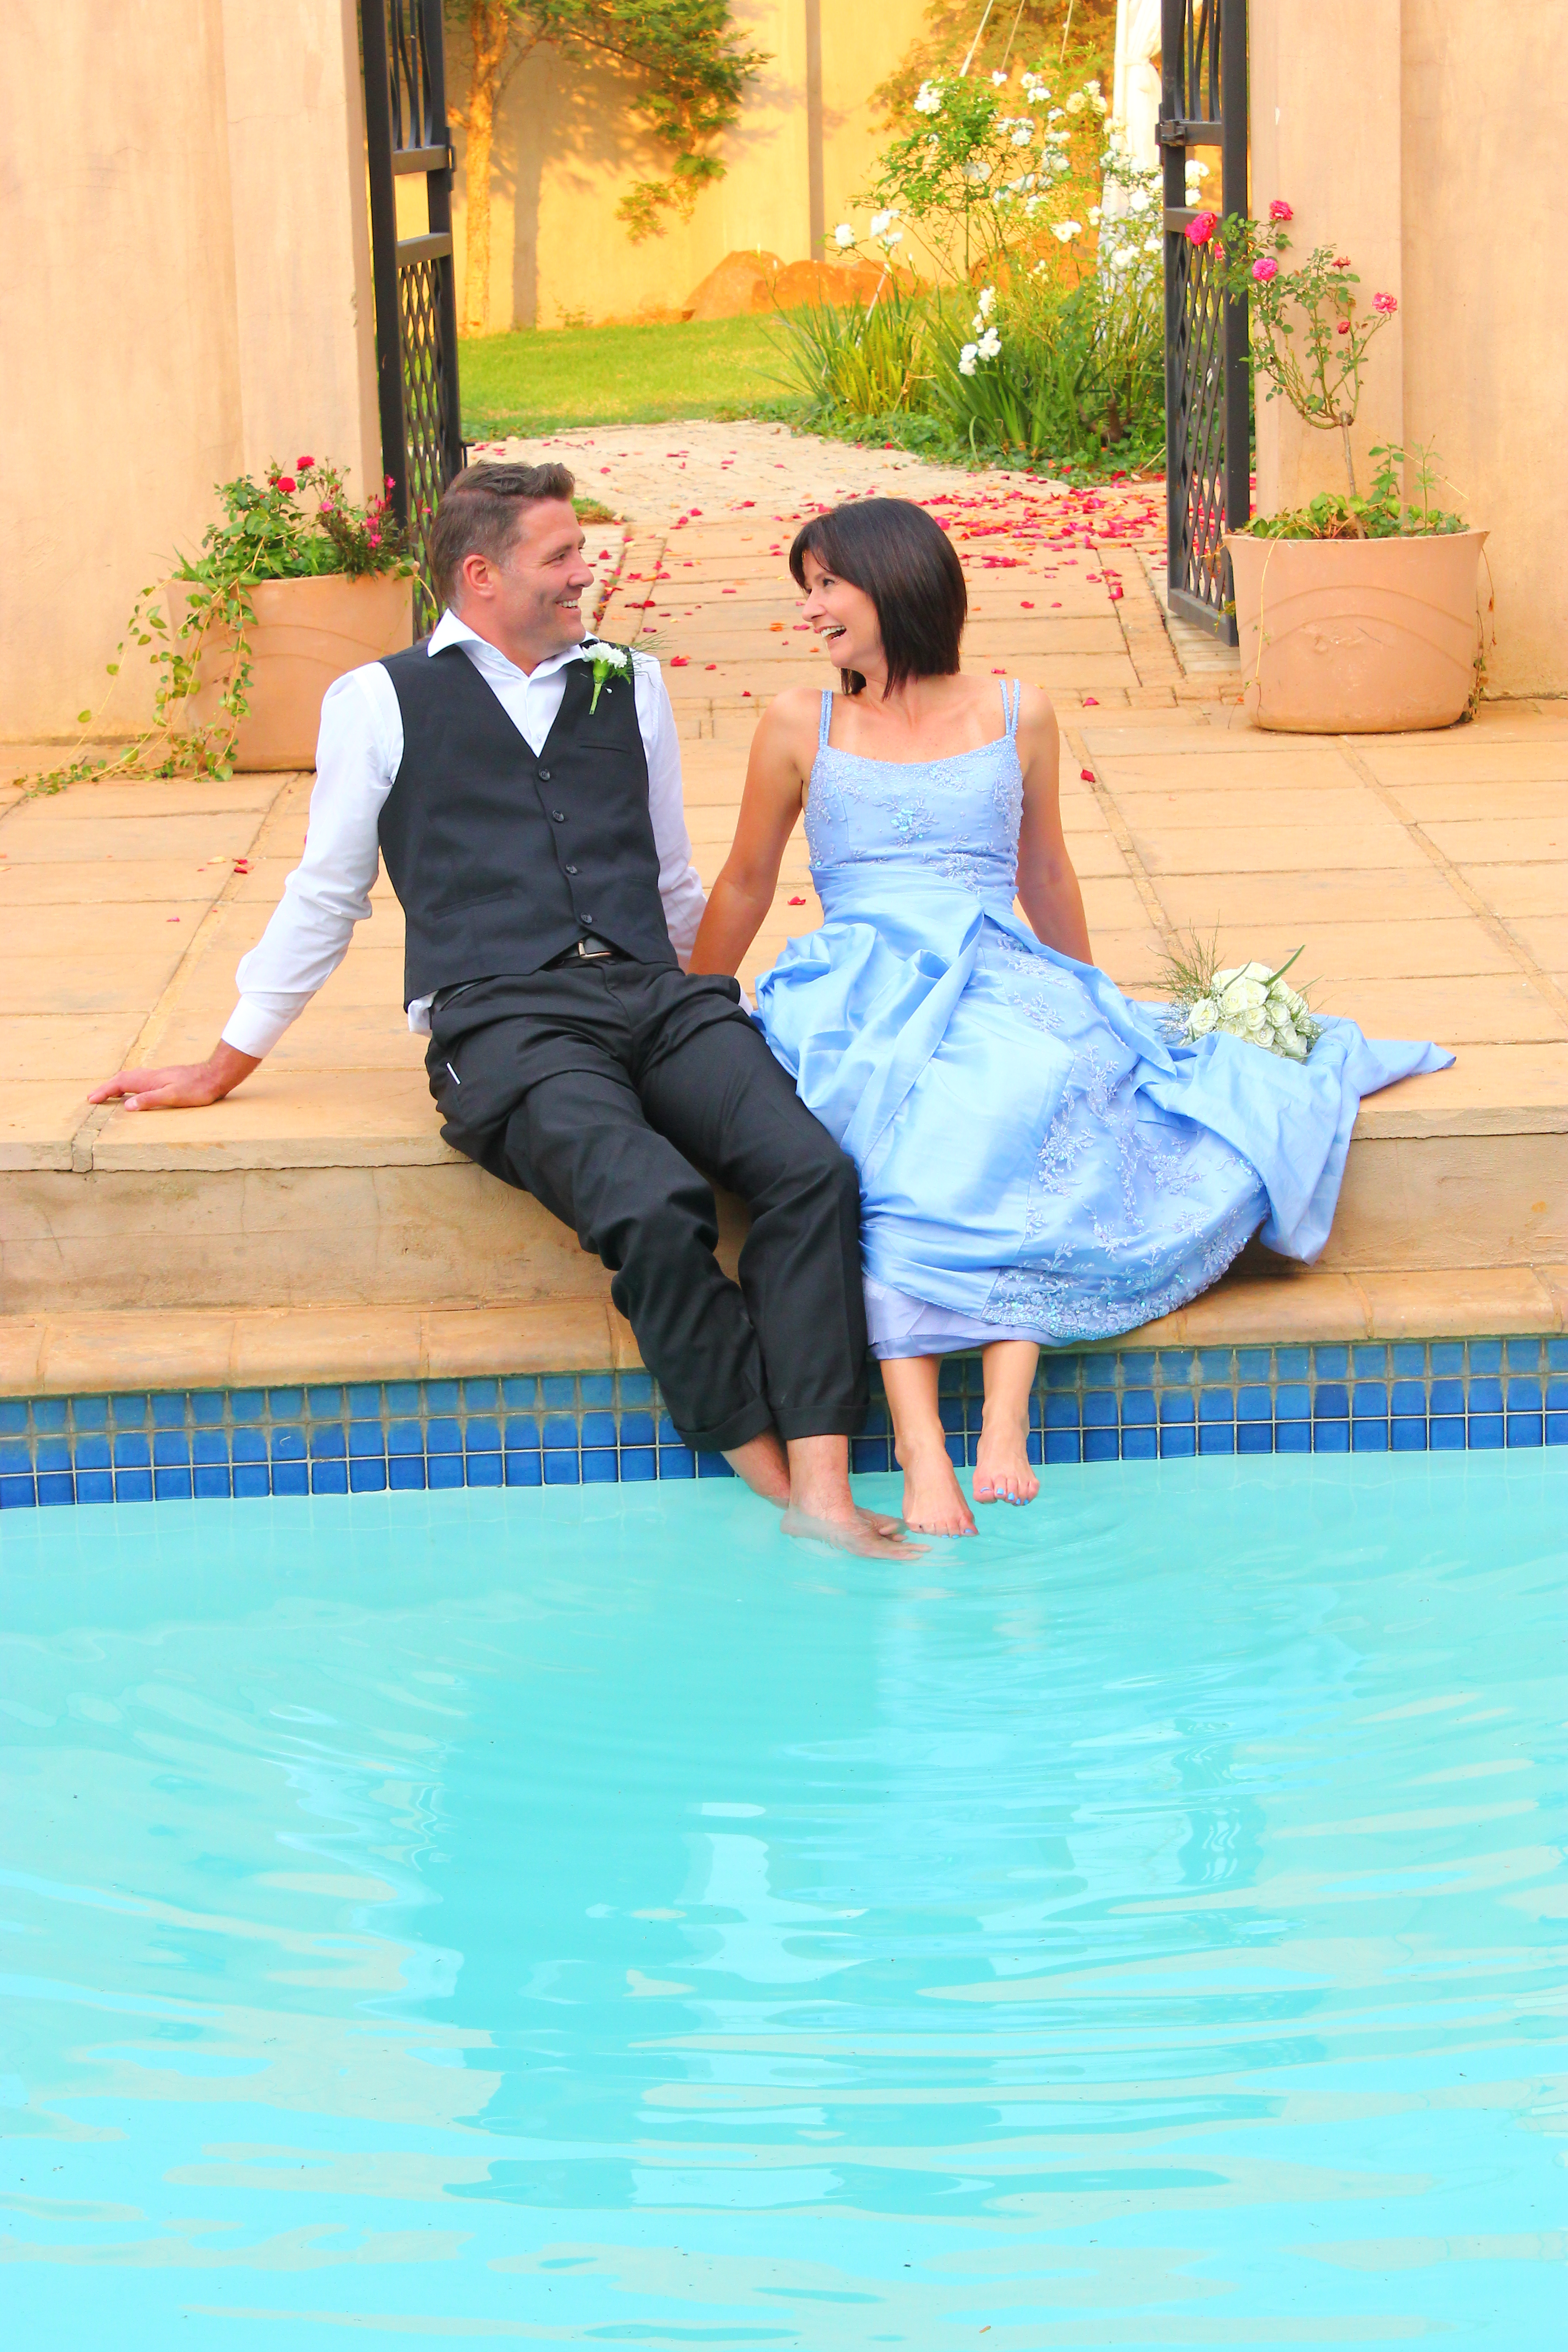 Swimming Pool Wedding Photography | Photoshoots Pretoria